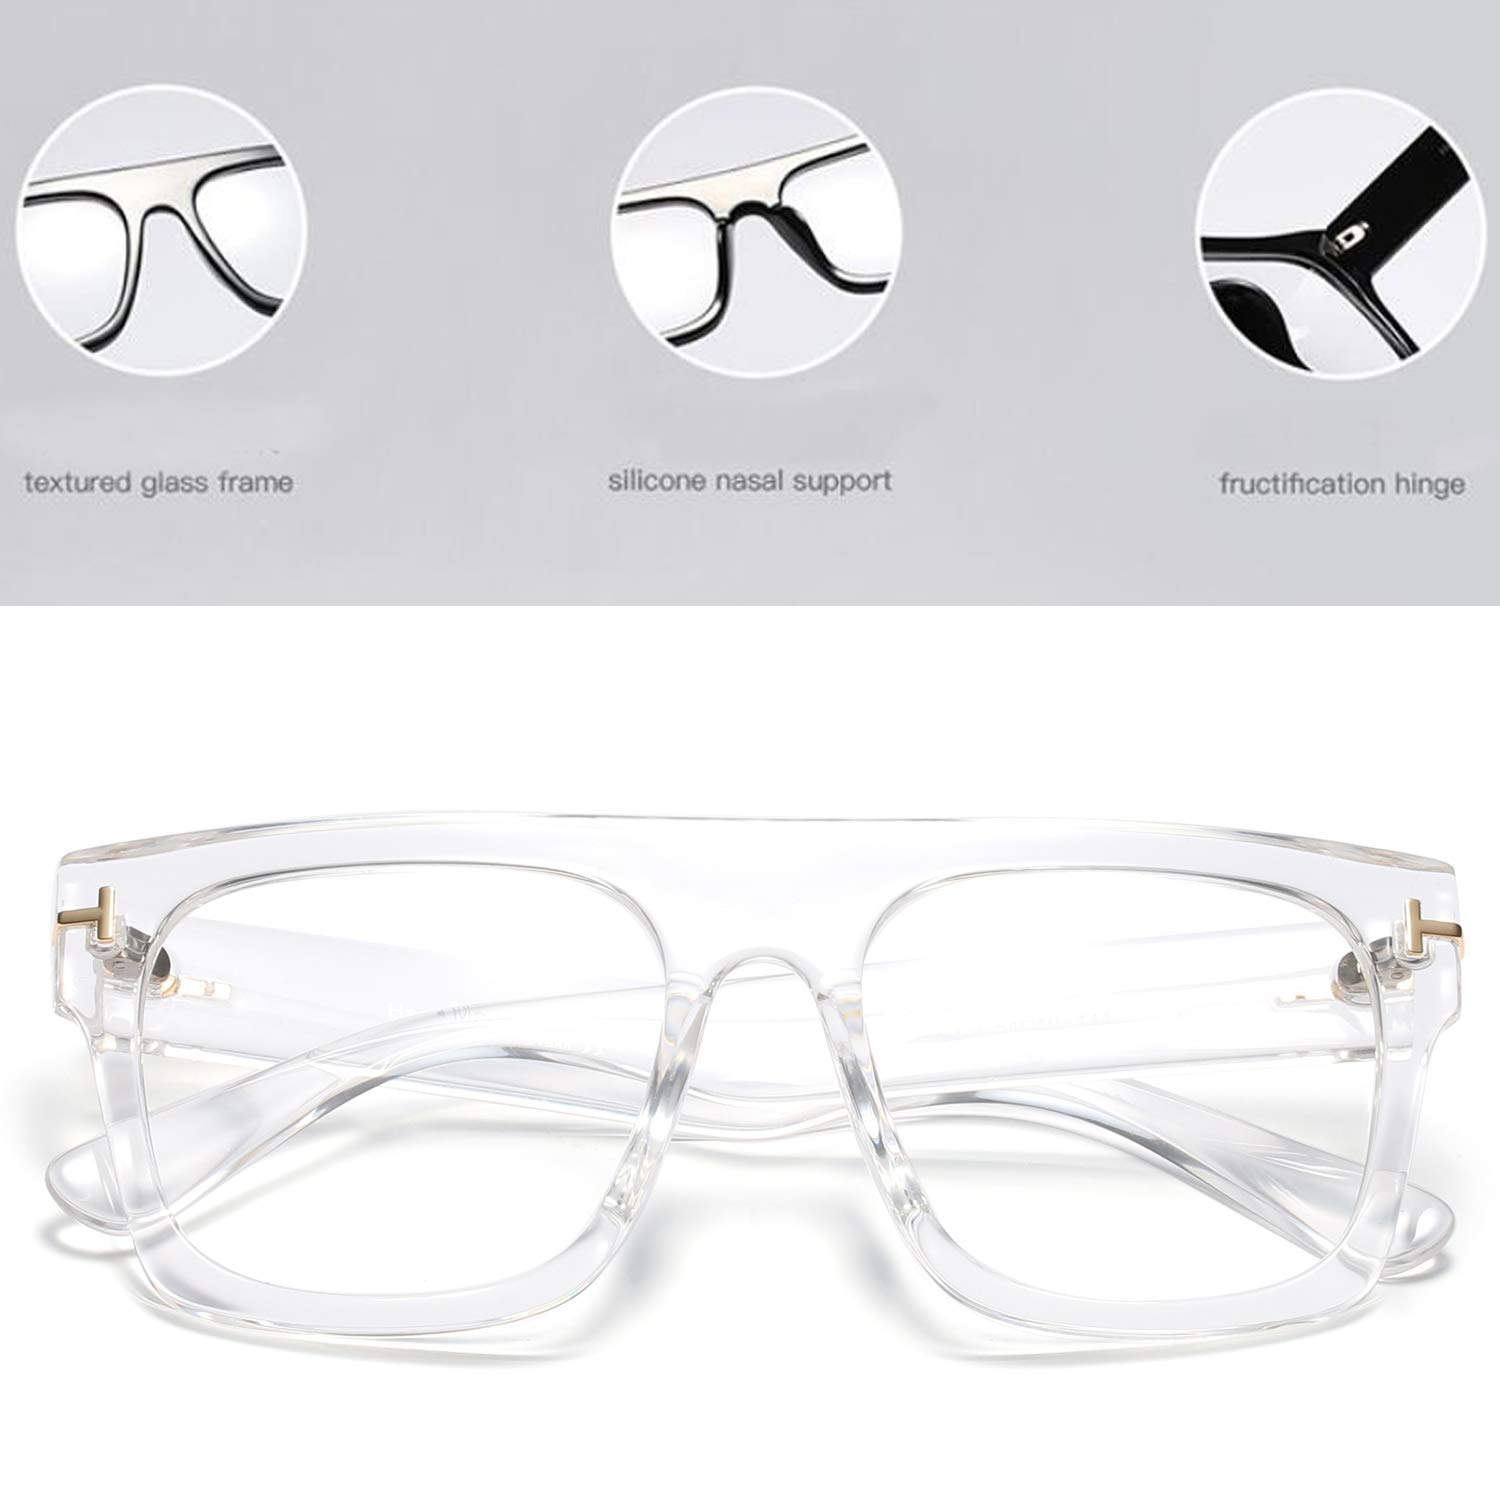 Allt Unisex Large Square Optical Eyewear Non-prescription Eyeglasses Flat Top Clear Lens Glasses Frames